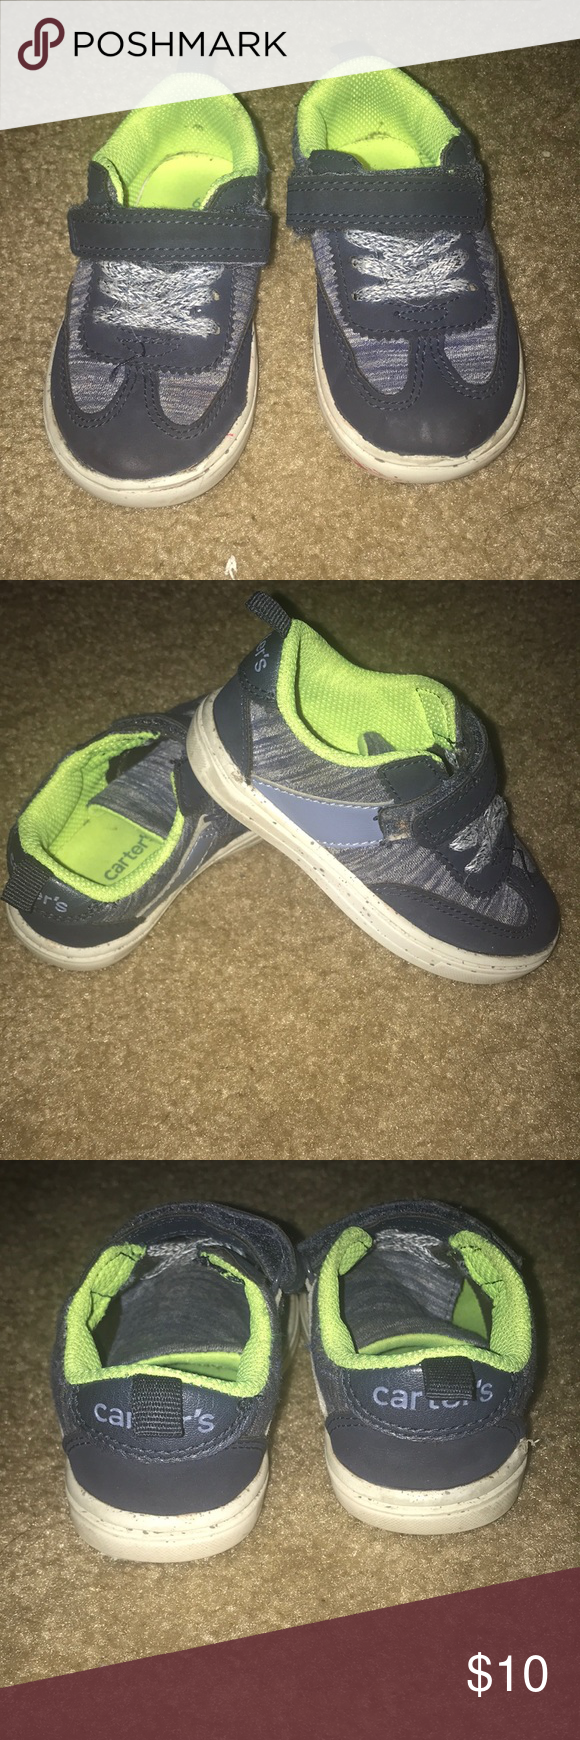 Carters Toddler Boys Shoe Set Of Previously Loved Toddler Boys Carter Shoes These Are A Size 6 They Have A Velcro Closure Still Lot Toddler Boy Shoes Boys Shoes Toddler Boys